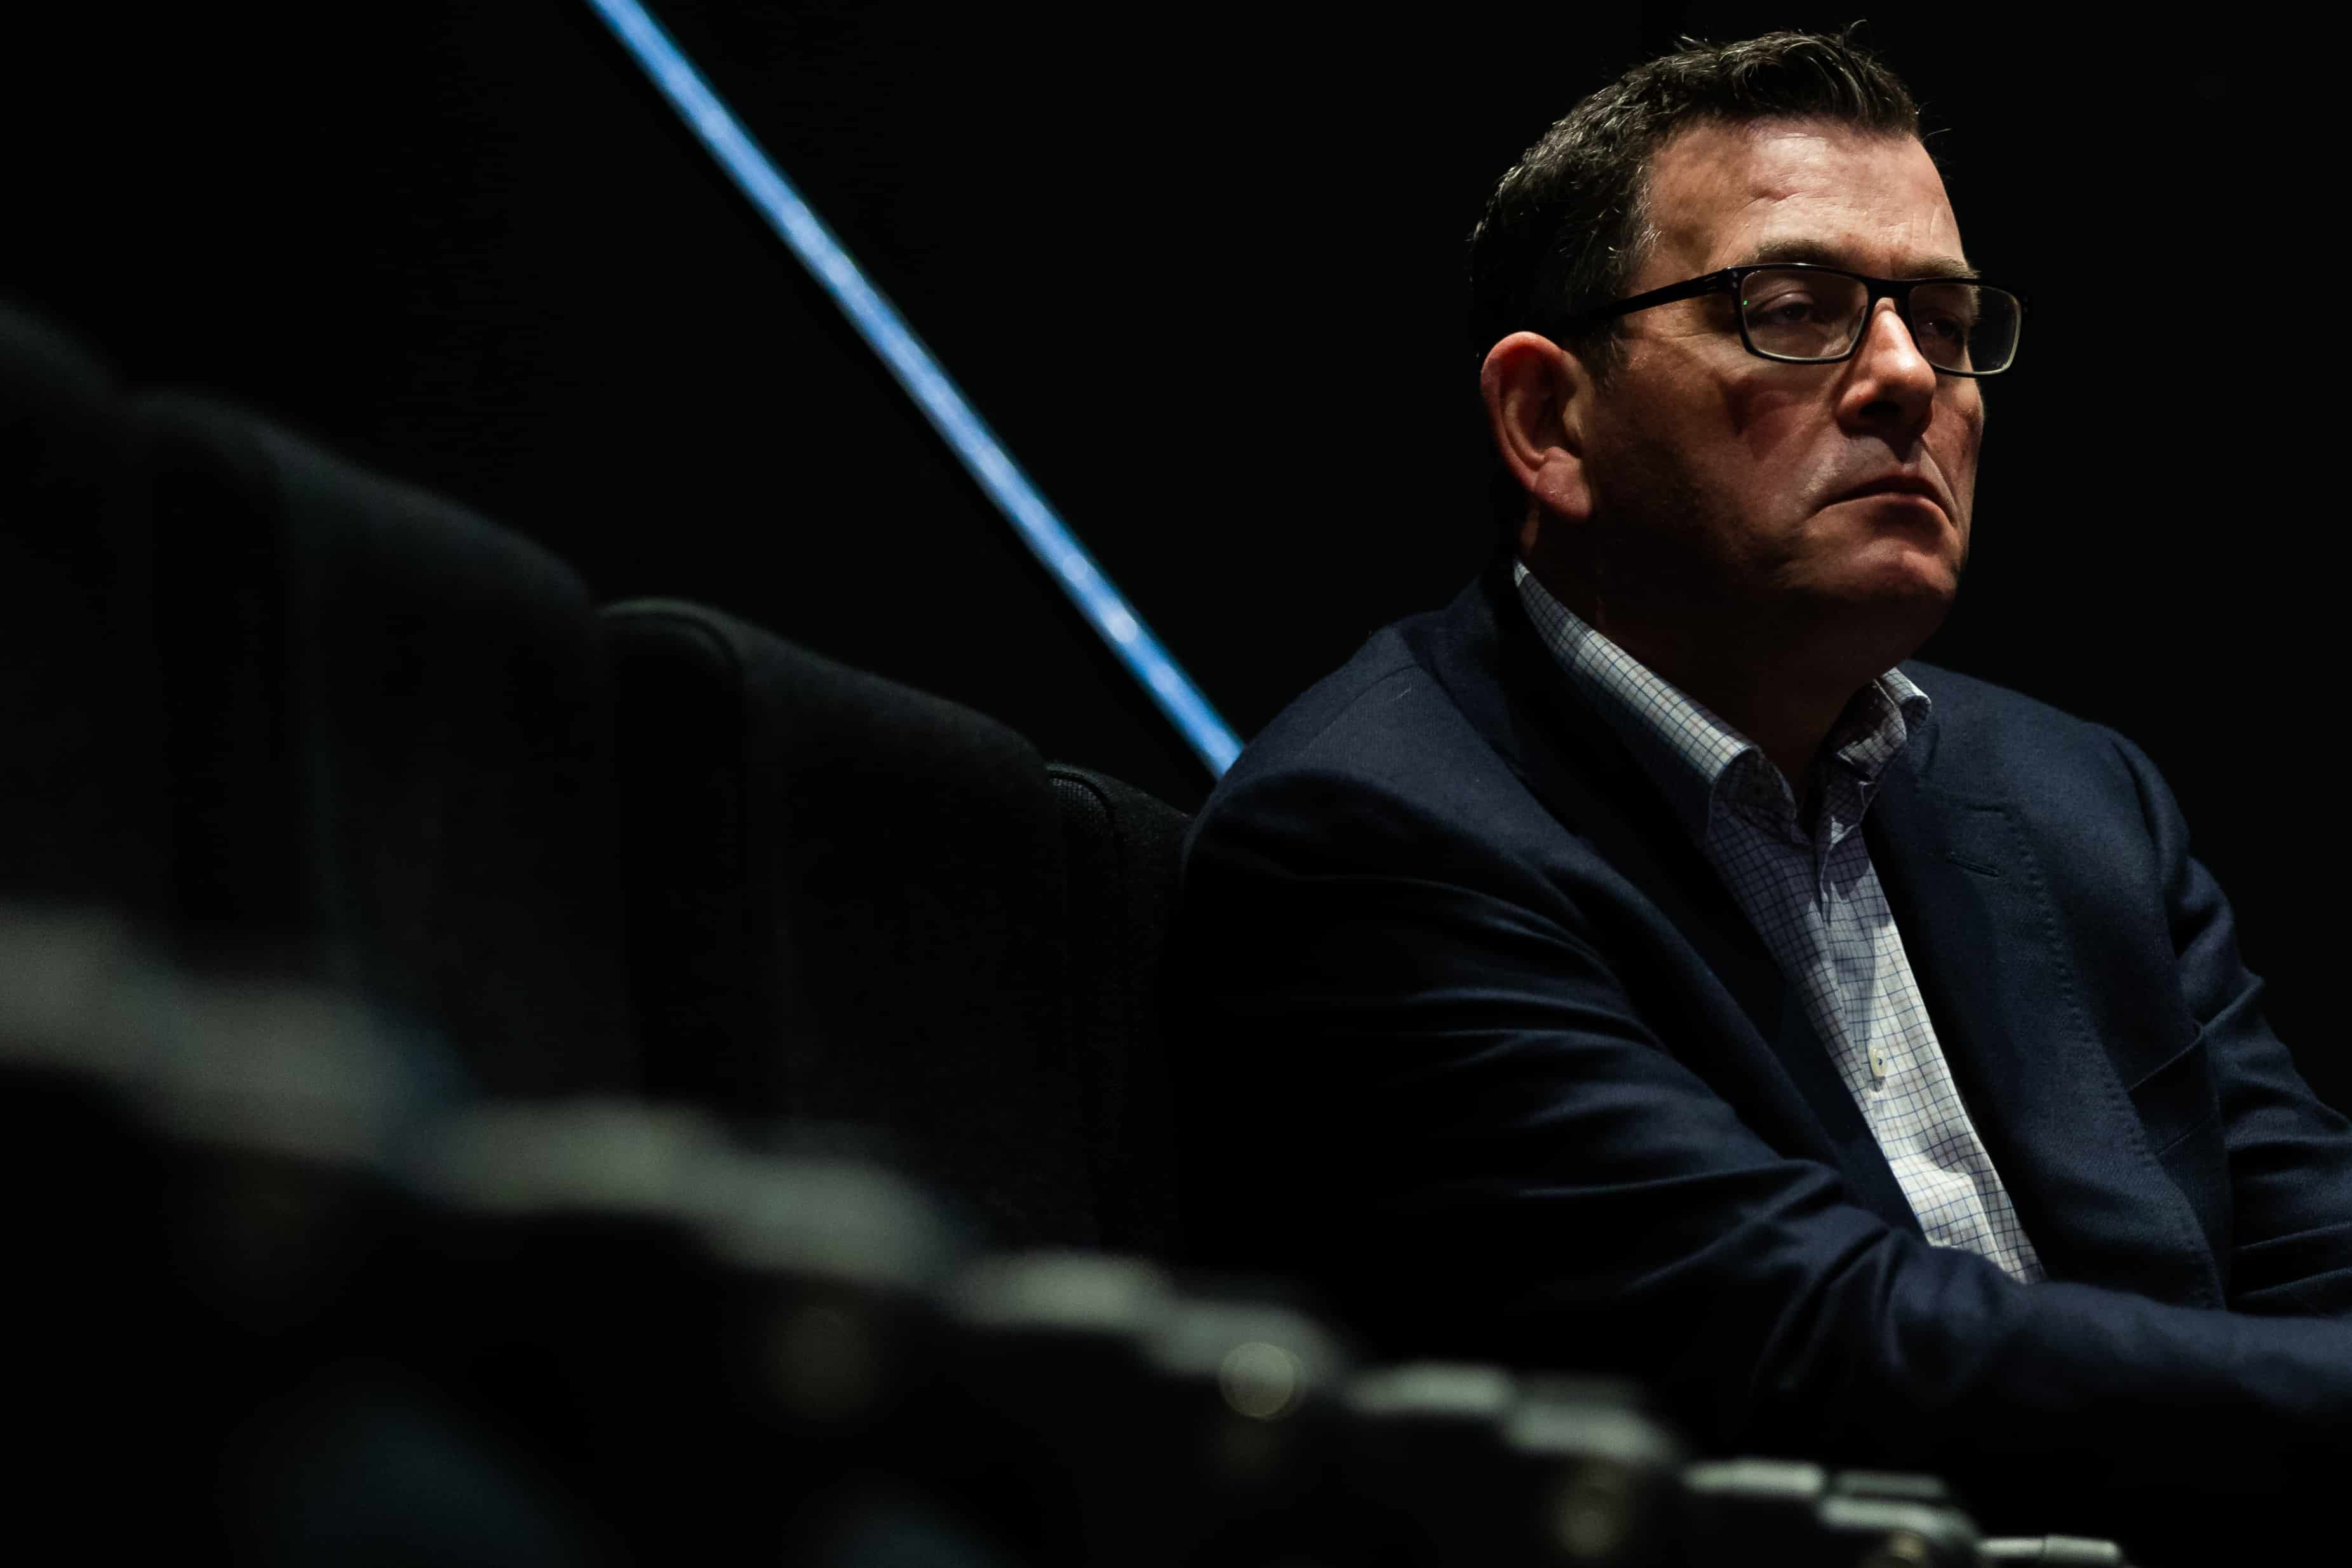 Premier Daniel Andrews sits in the Treasury Theatre during his daily press conference during the daily COVID-19 press conference. A further 300 Coronavirus cases have been discovered overnight, and a further 6 deaths bringing Victoria's active cases to over 3600.